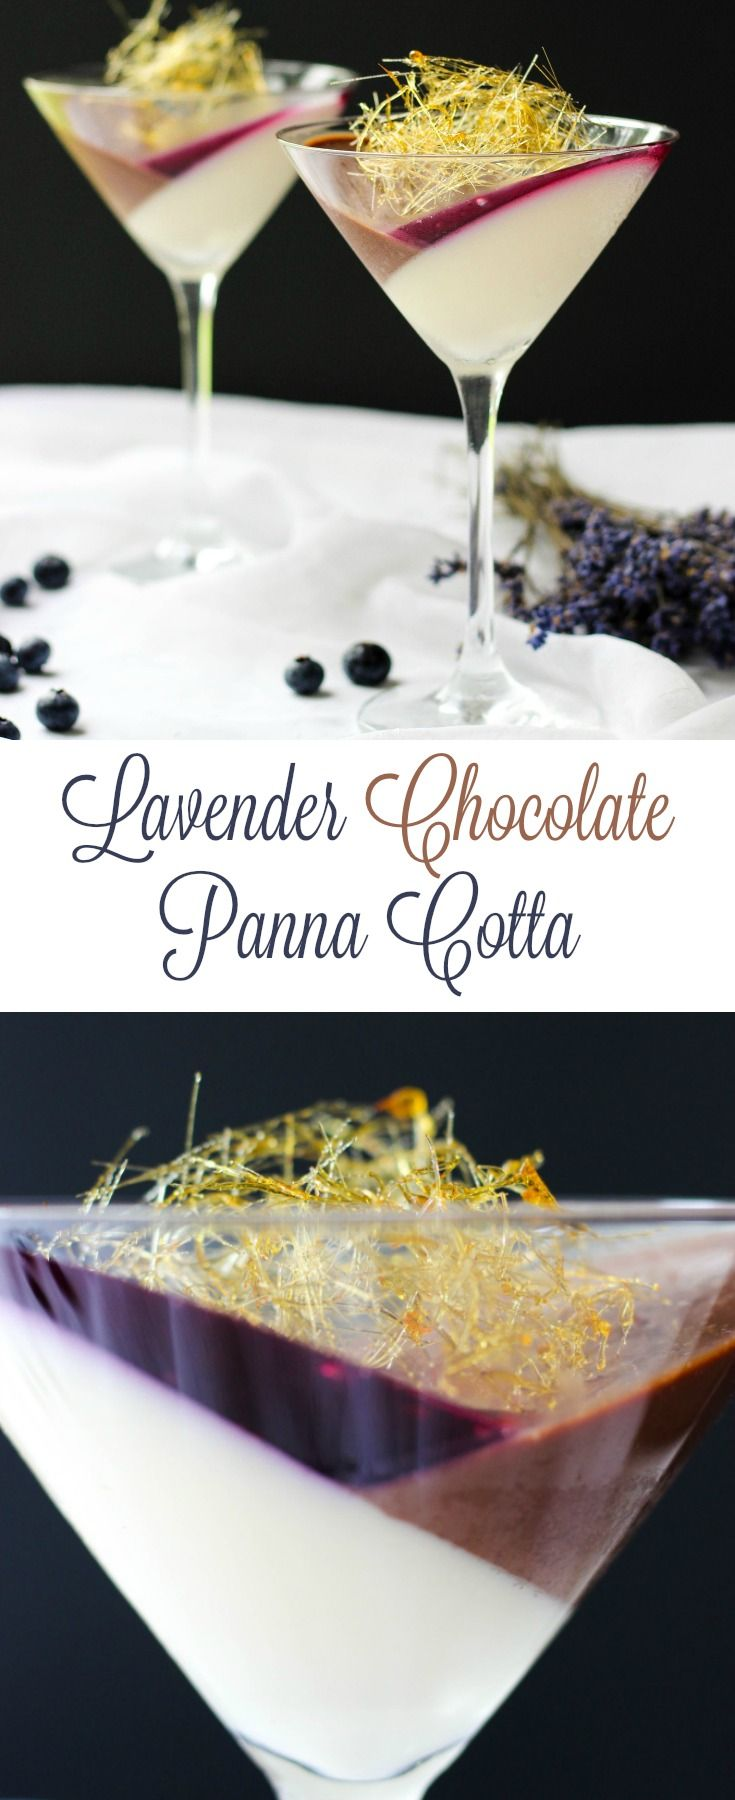 This EPIC Lavender-Chocolate Panna Cotta is sure to become your favorite Italian dessert! It's absolutely mouthwatering!